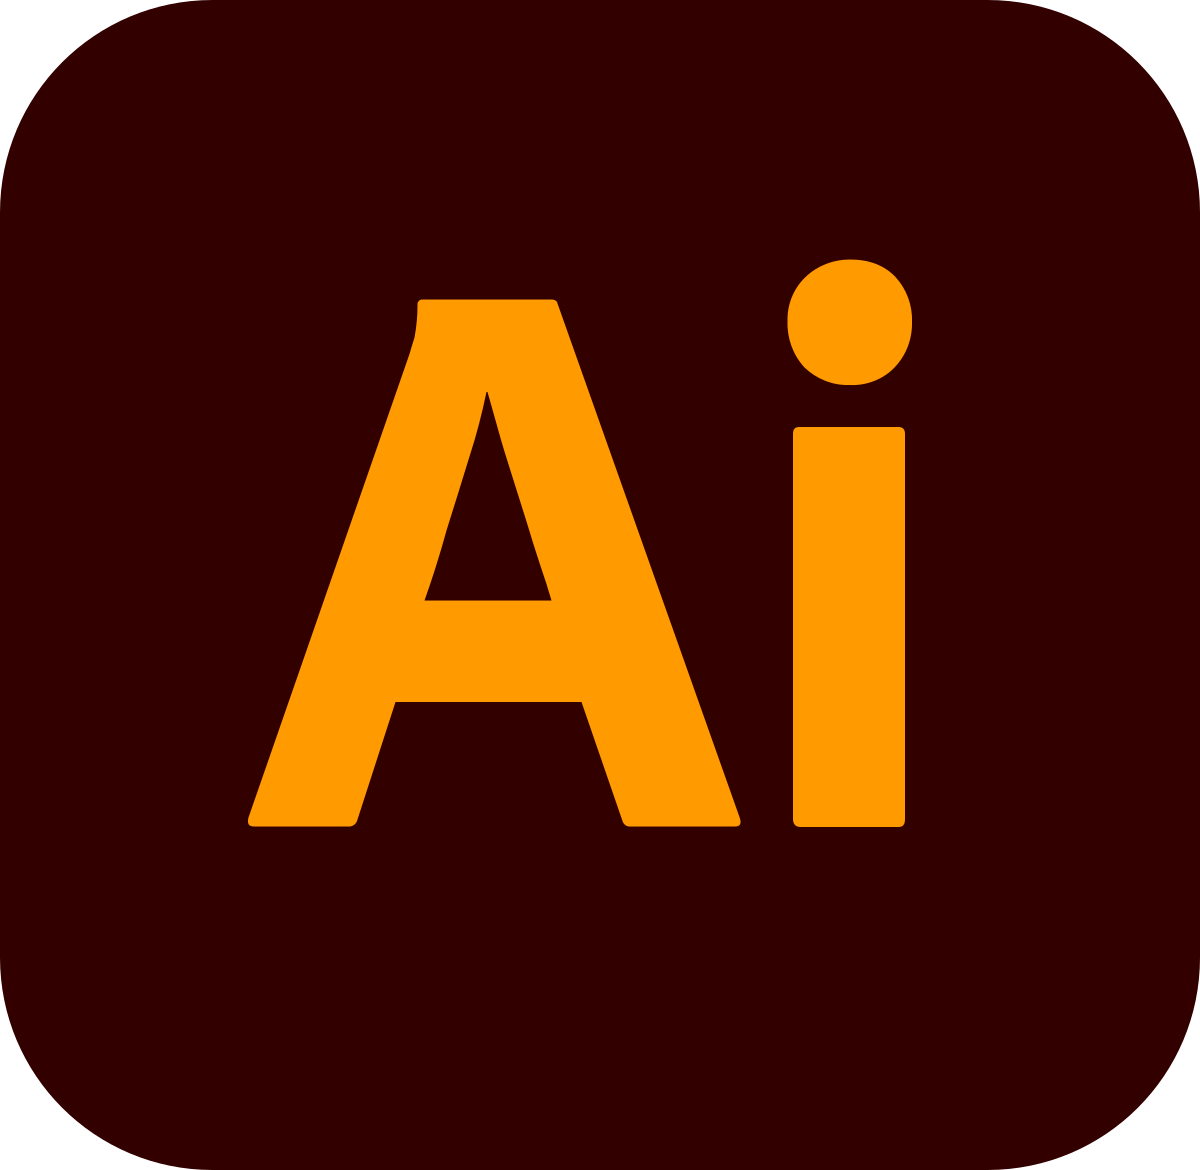 Adobe Illustrator CC 2021 v25.0.1.66 Full version